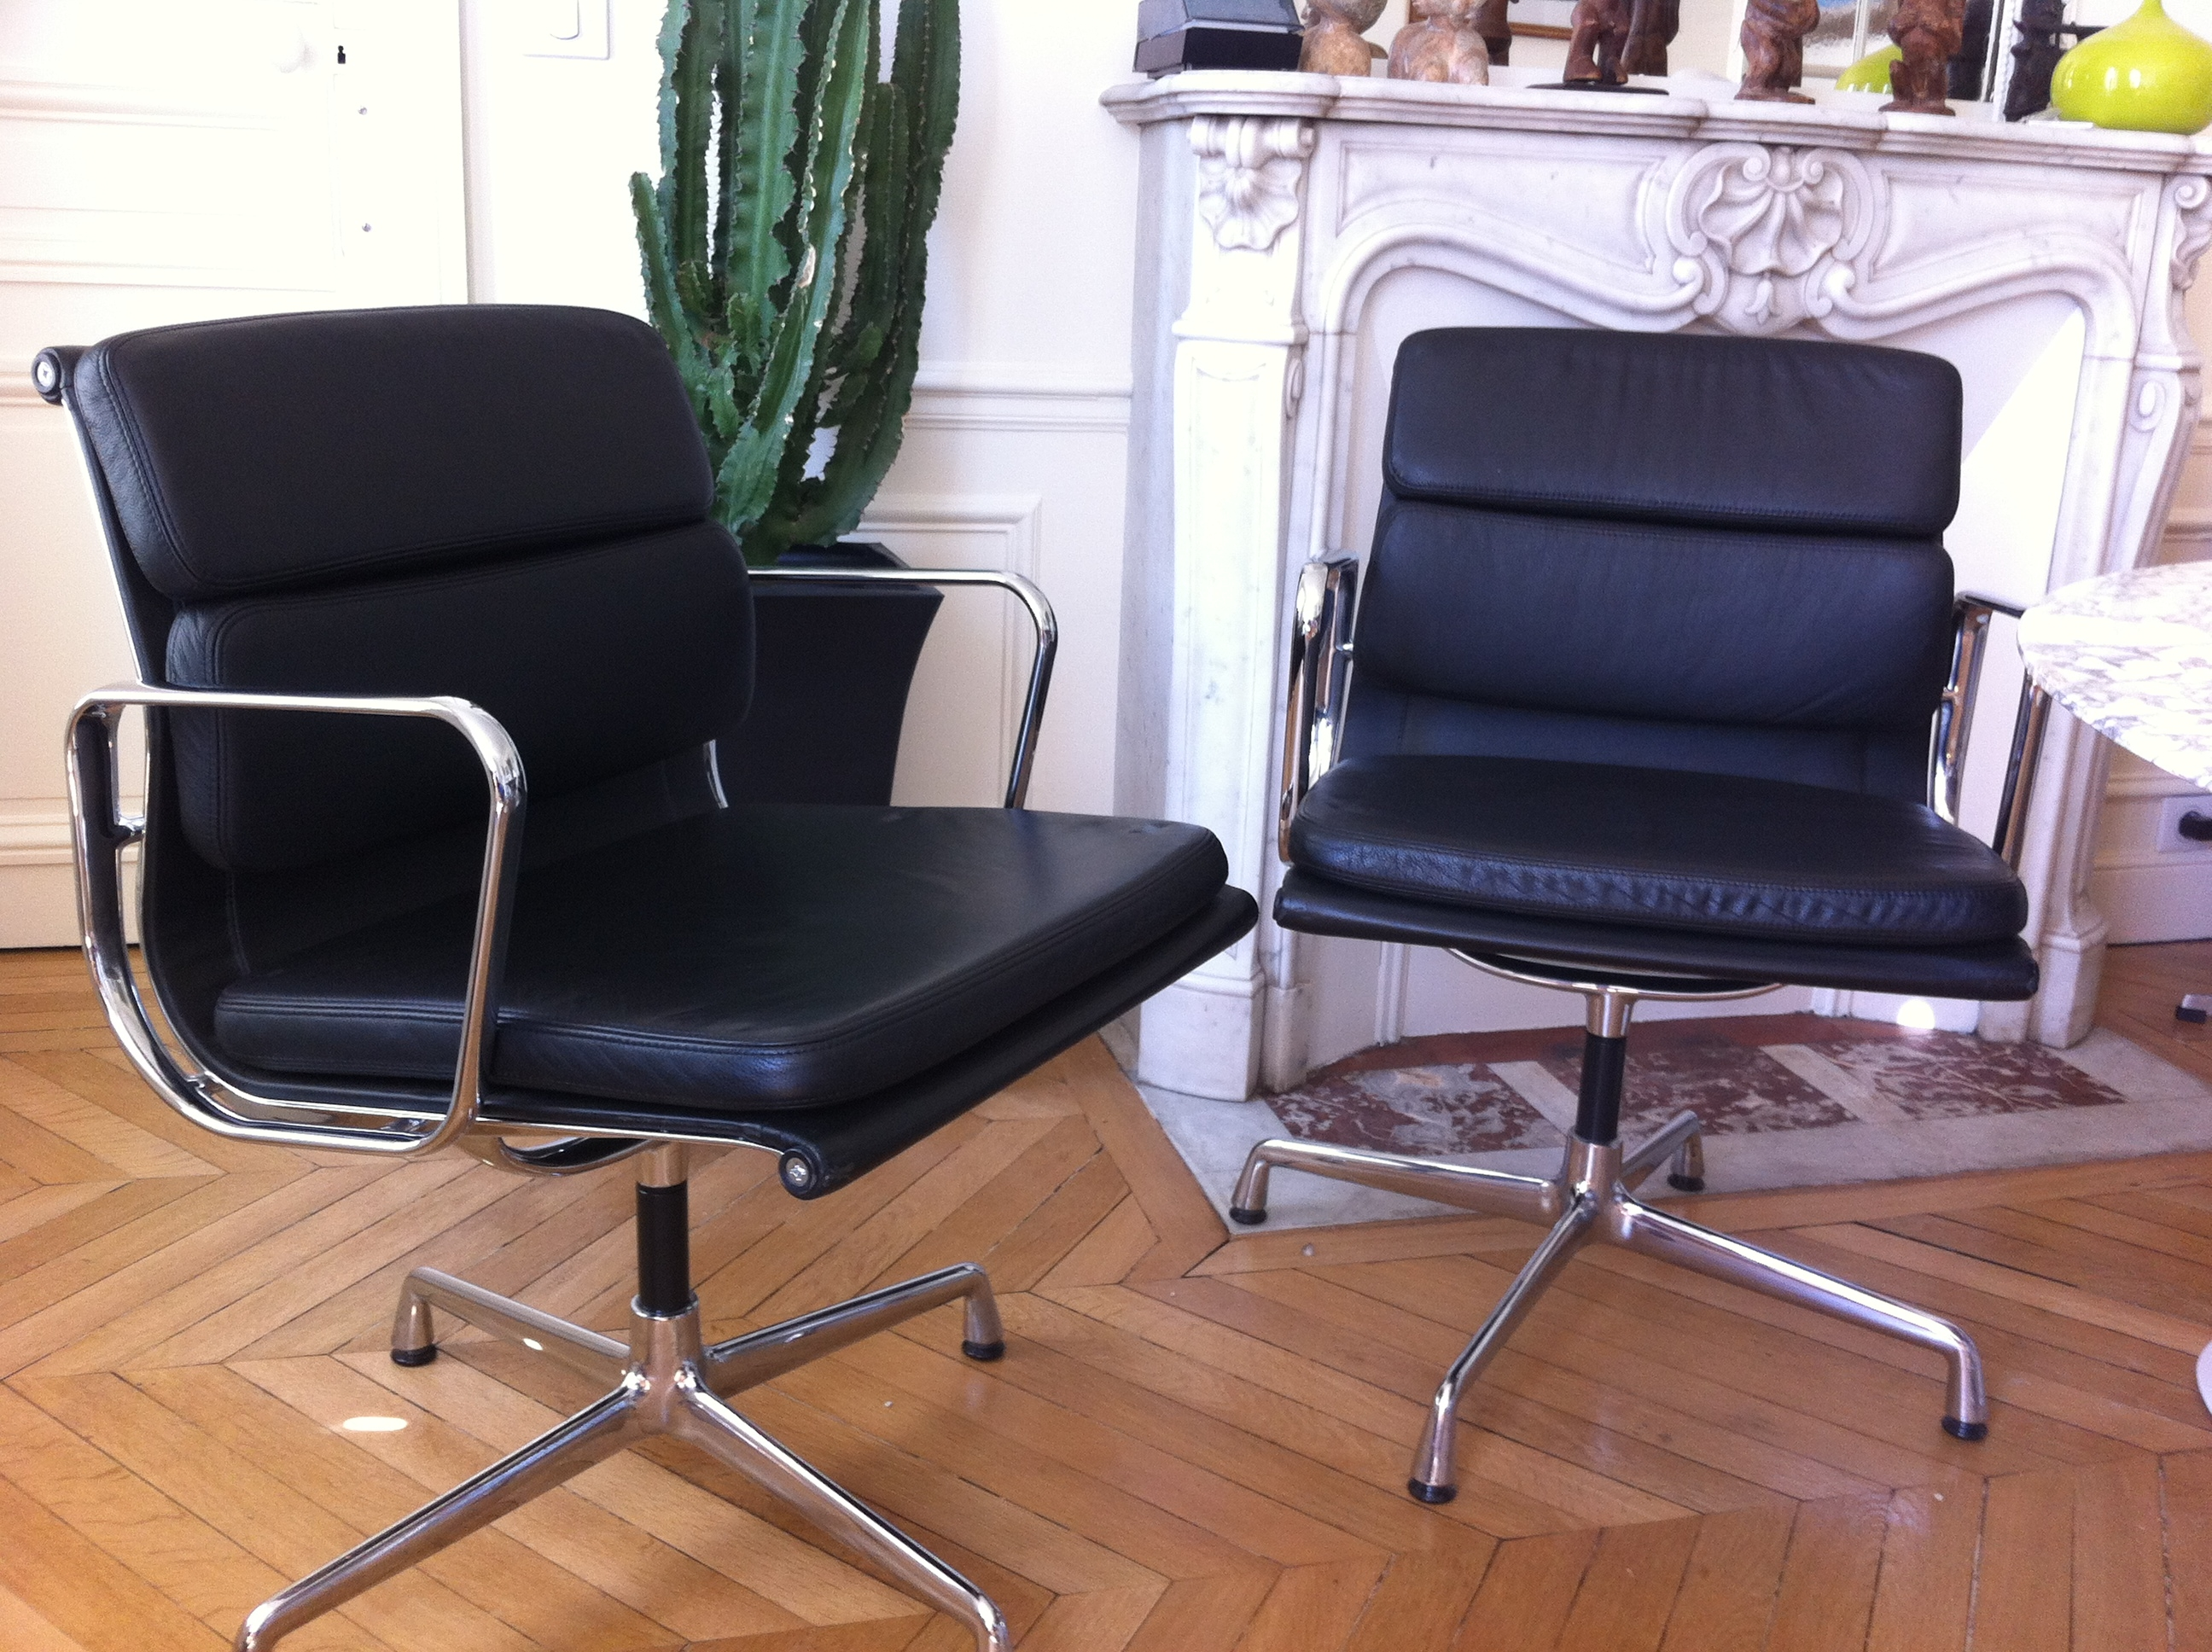 Fauteuils soft pad charles eames pour vitra l 39 atelier 50 for Achat fauteuil charles eames